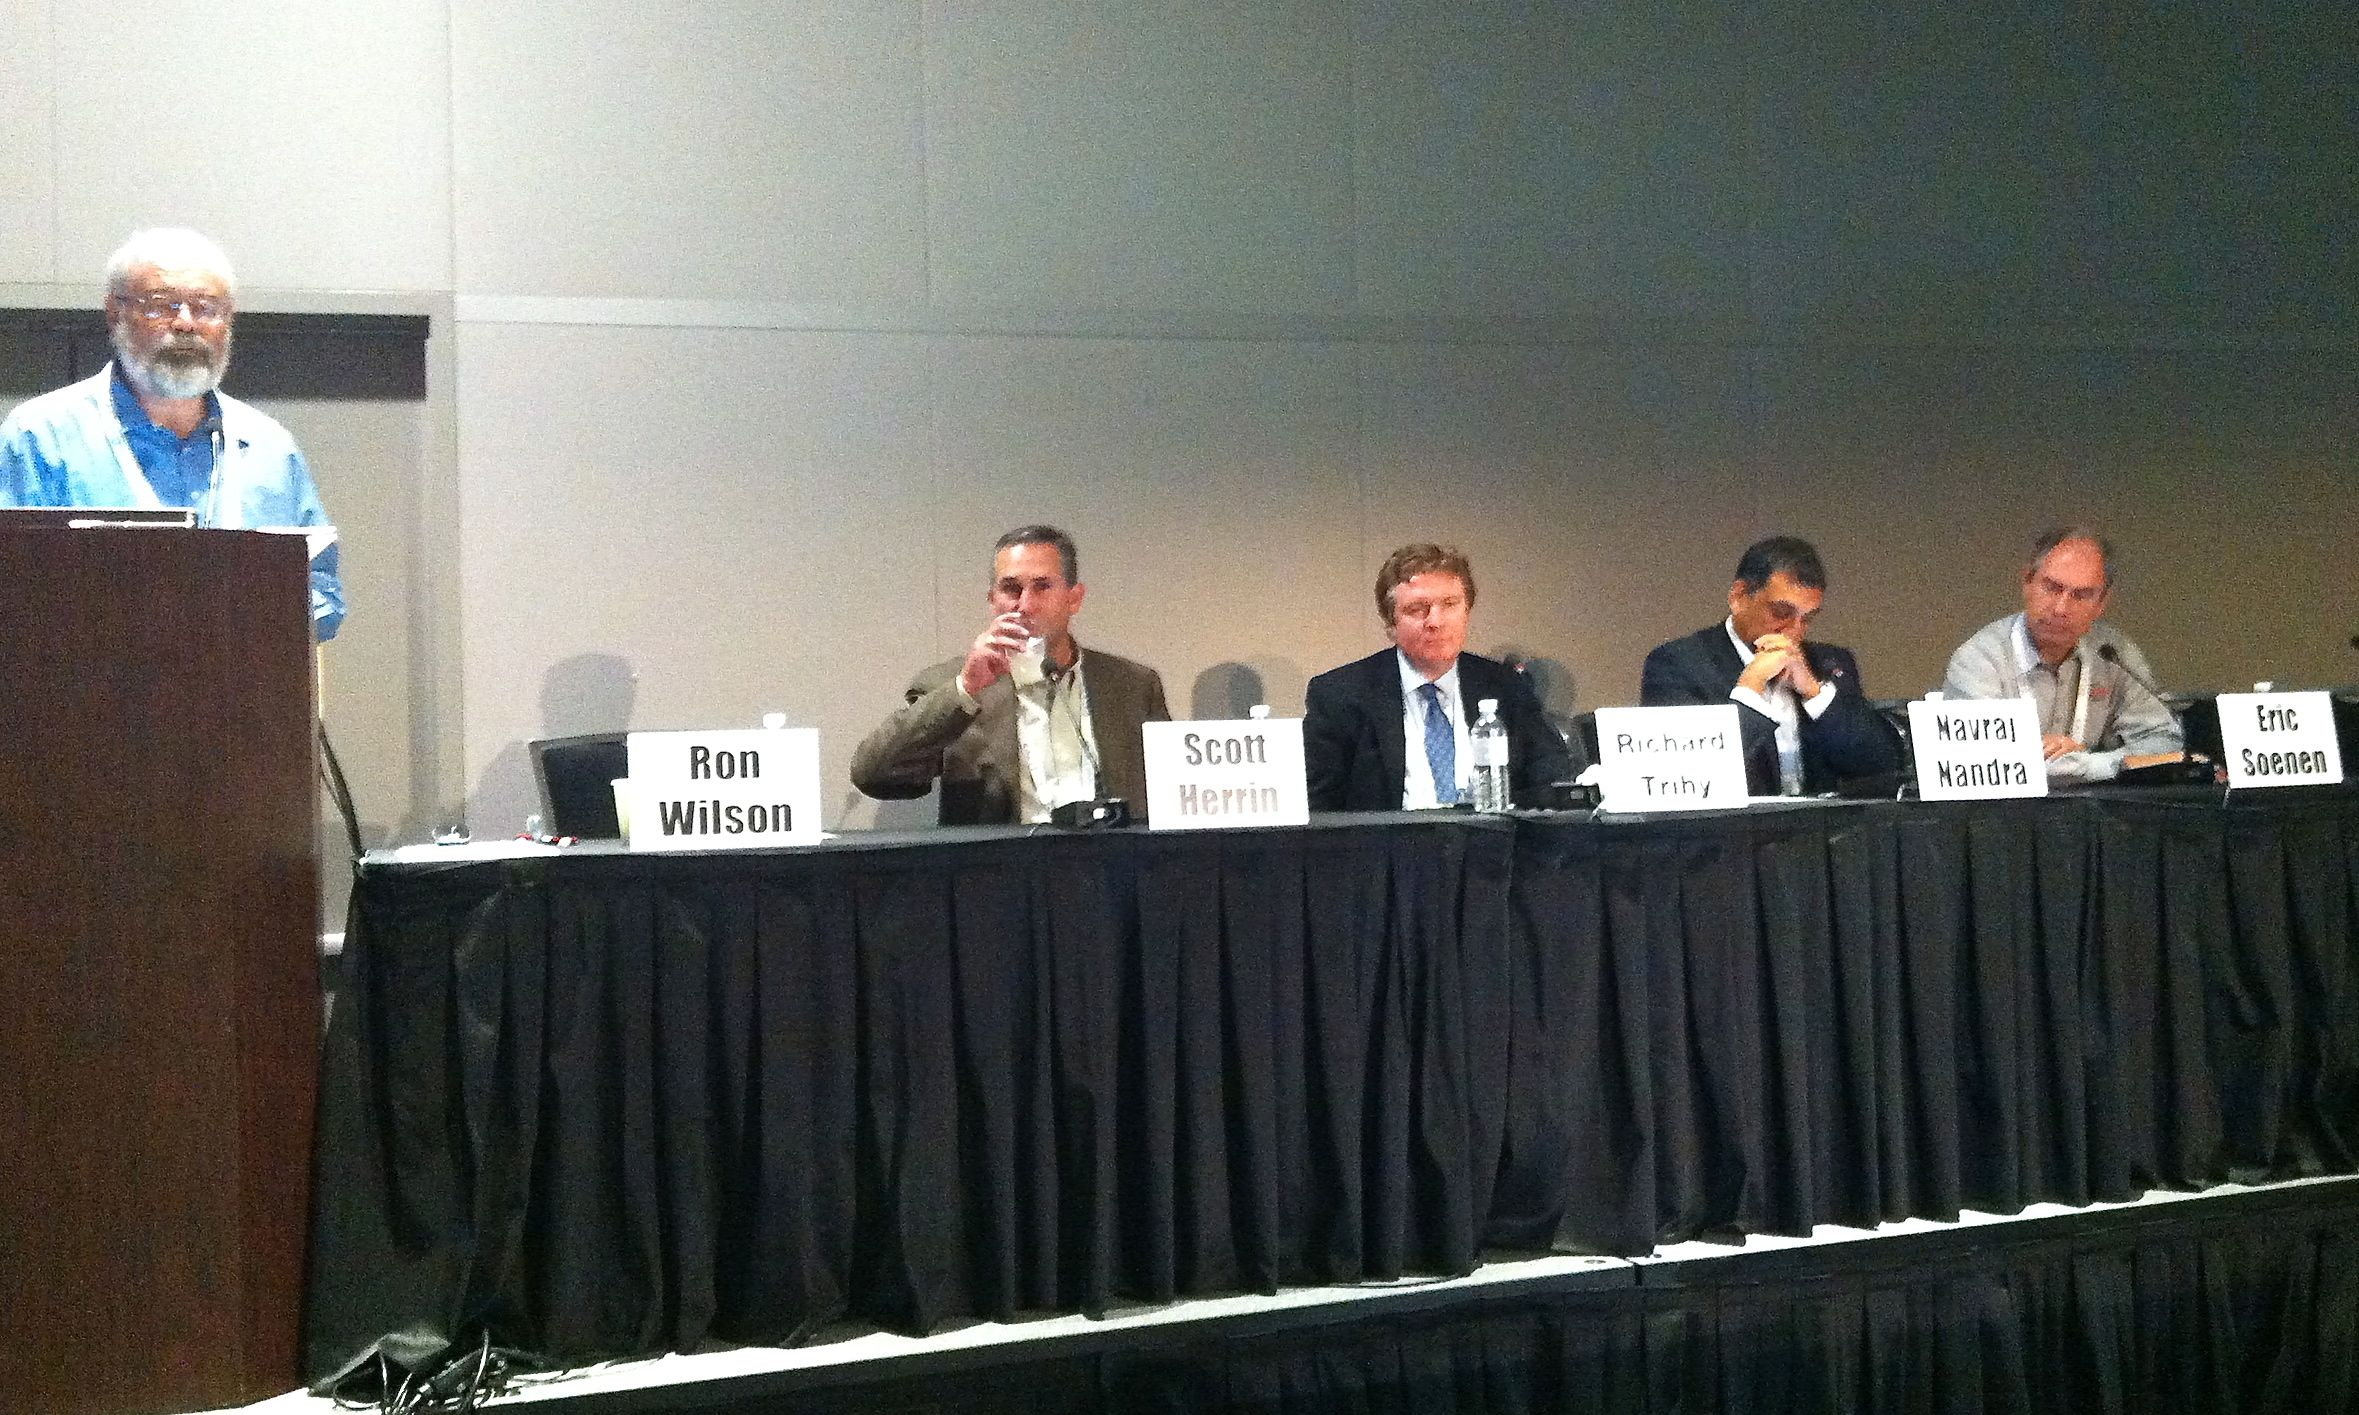 FinFETs and Analog panel: (L-R) Ron Wilson (moderator); Scott Herrin (Freescale); Richard Trihy (GlobalFoundries); Navraj Nandra (Synopsys); Eric Soenen (TSMC).